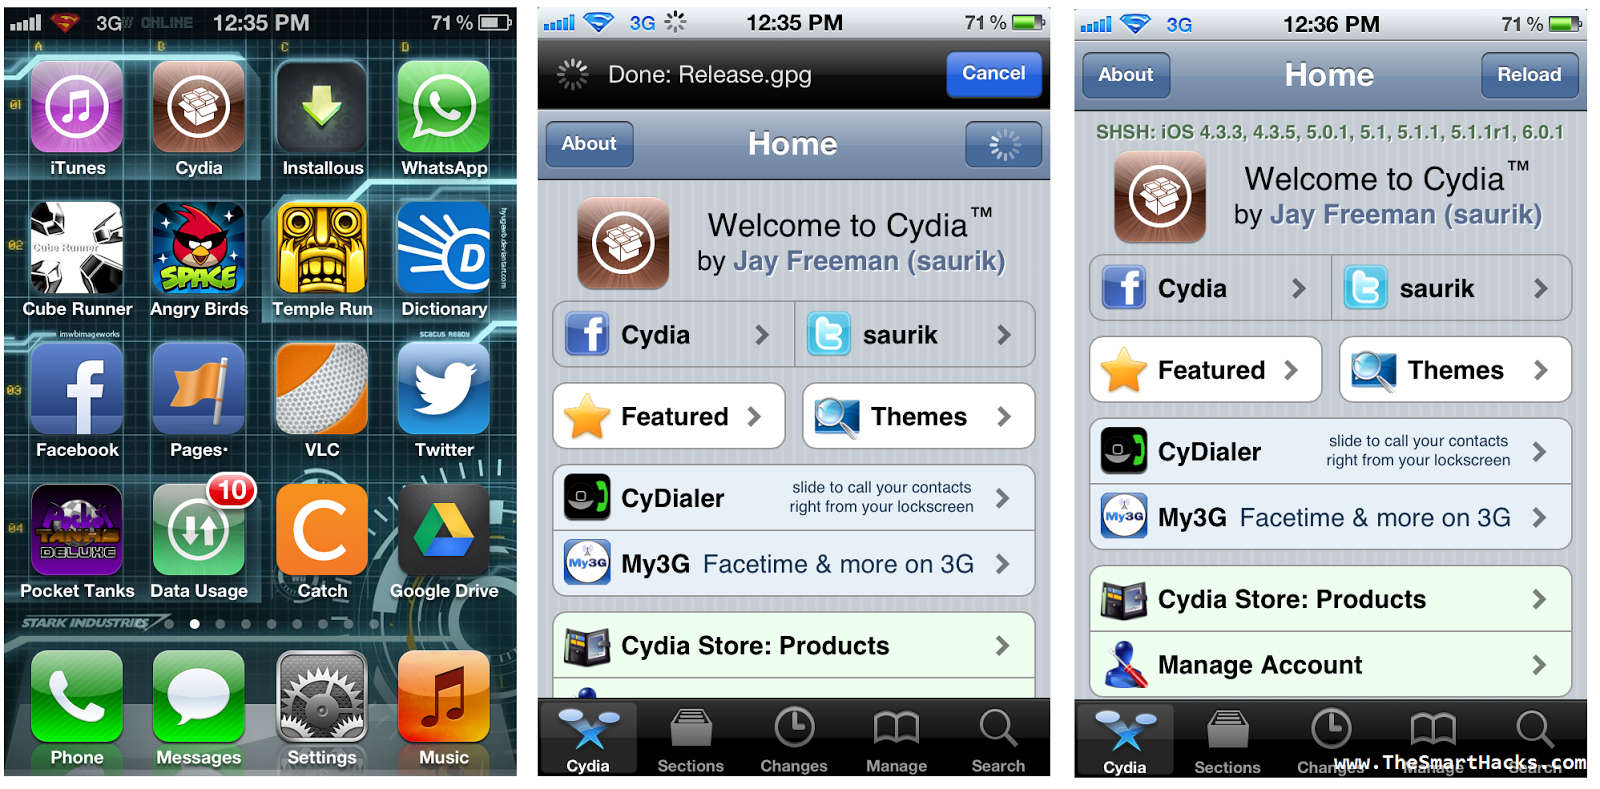 Install Jailbreak Tweaks Without Cydia or iFile - How to